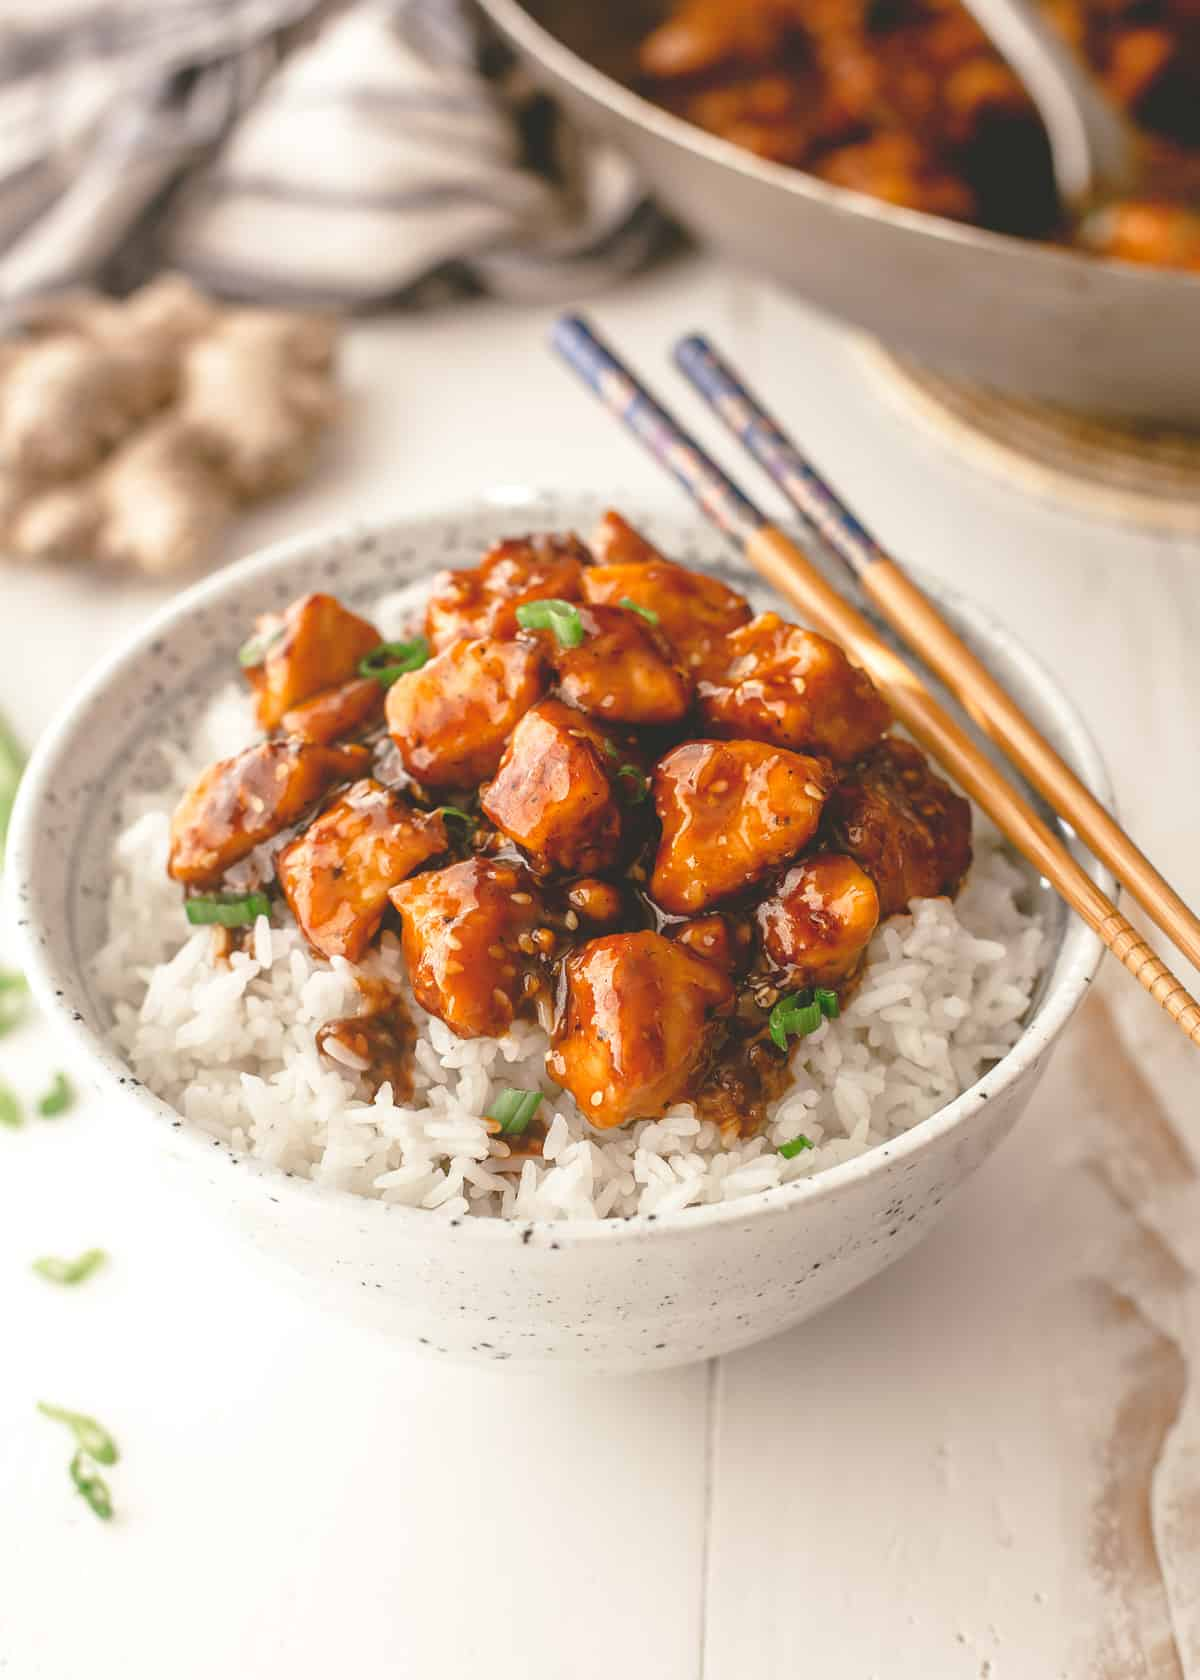 chicken stir fry over rice in a white bowl with chopsticks